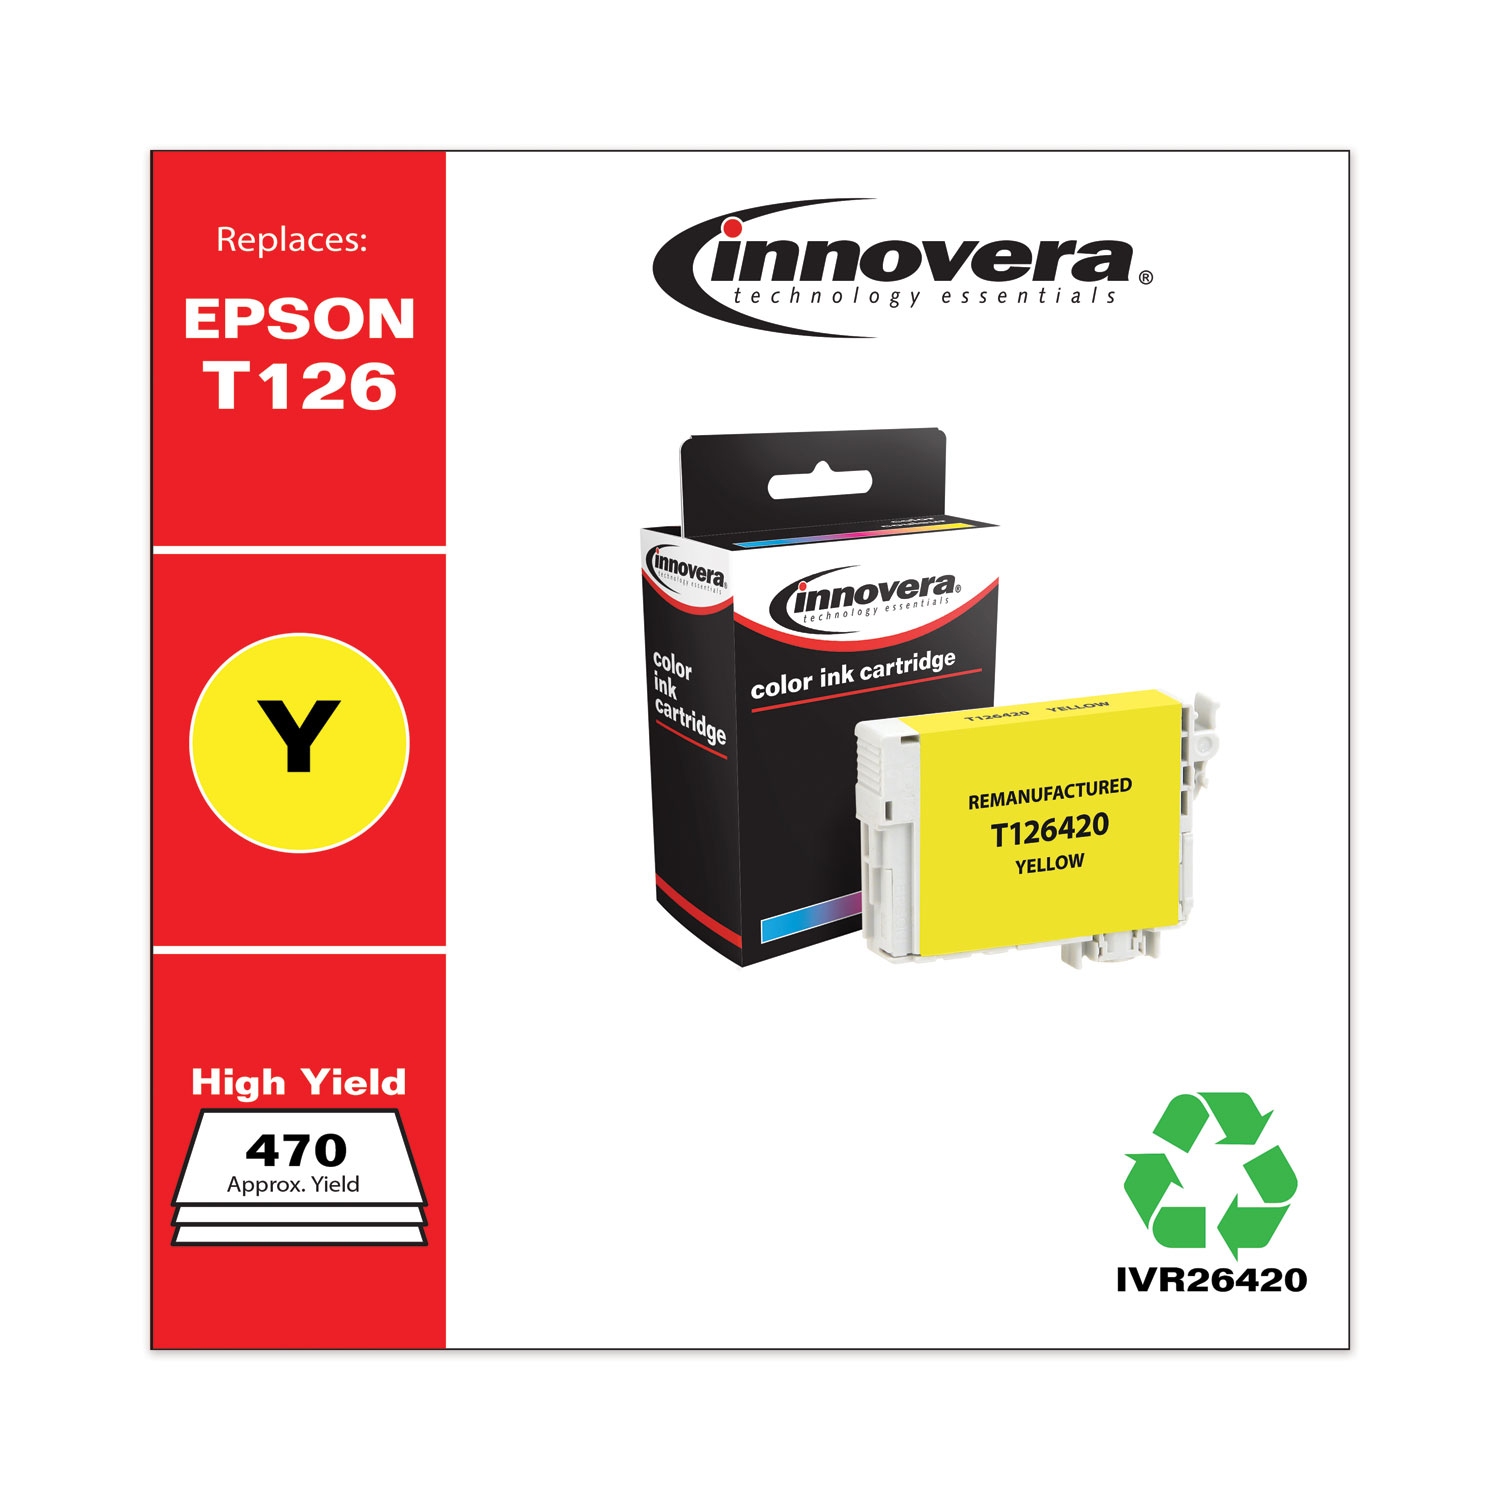 Remanufactured Yellow Ink, Replacement for Epson 126 (T126420), 470 Page-Yield IVR26420